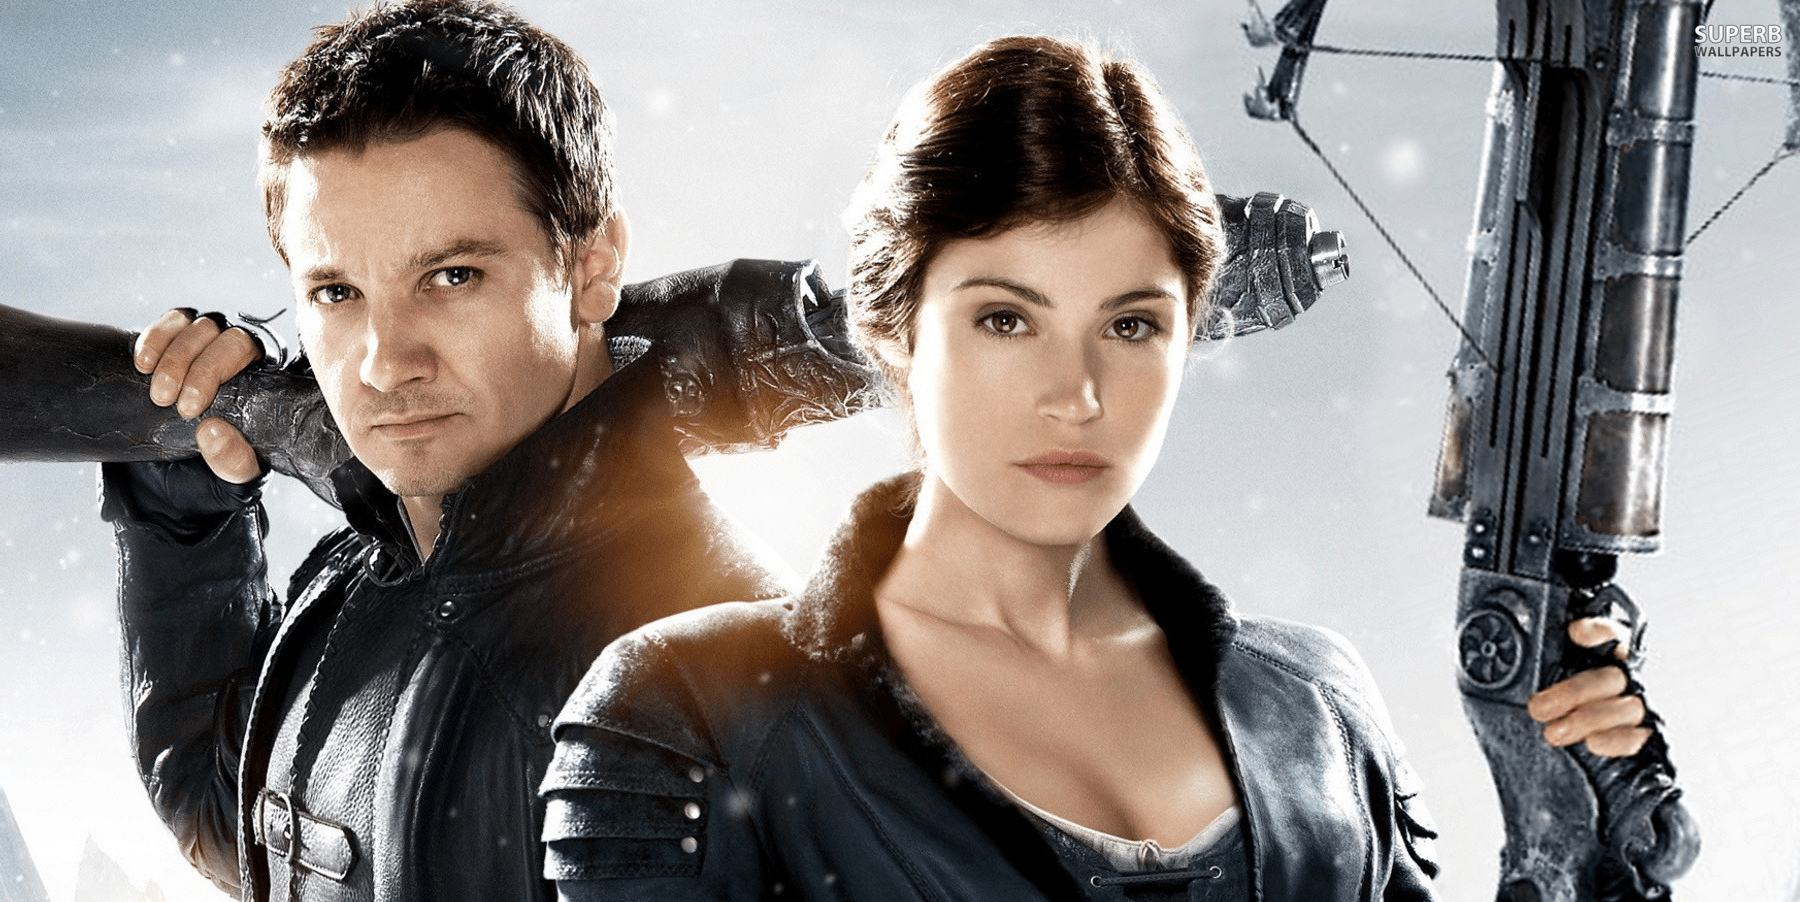 hansel & gretel: witch hunters 2 is really happening